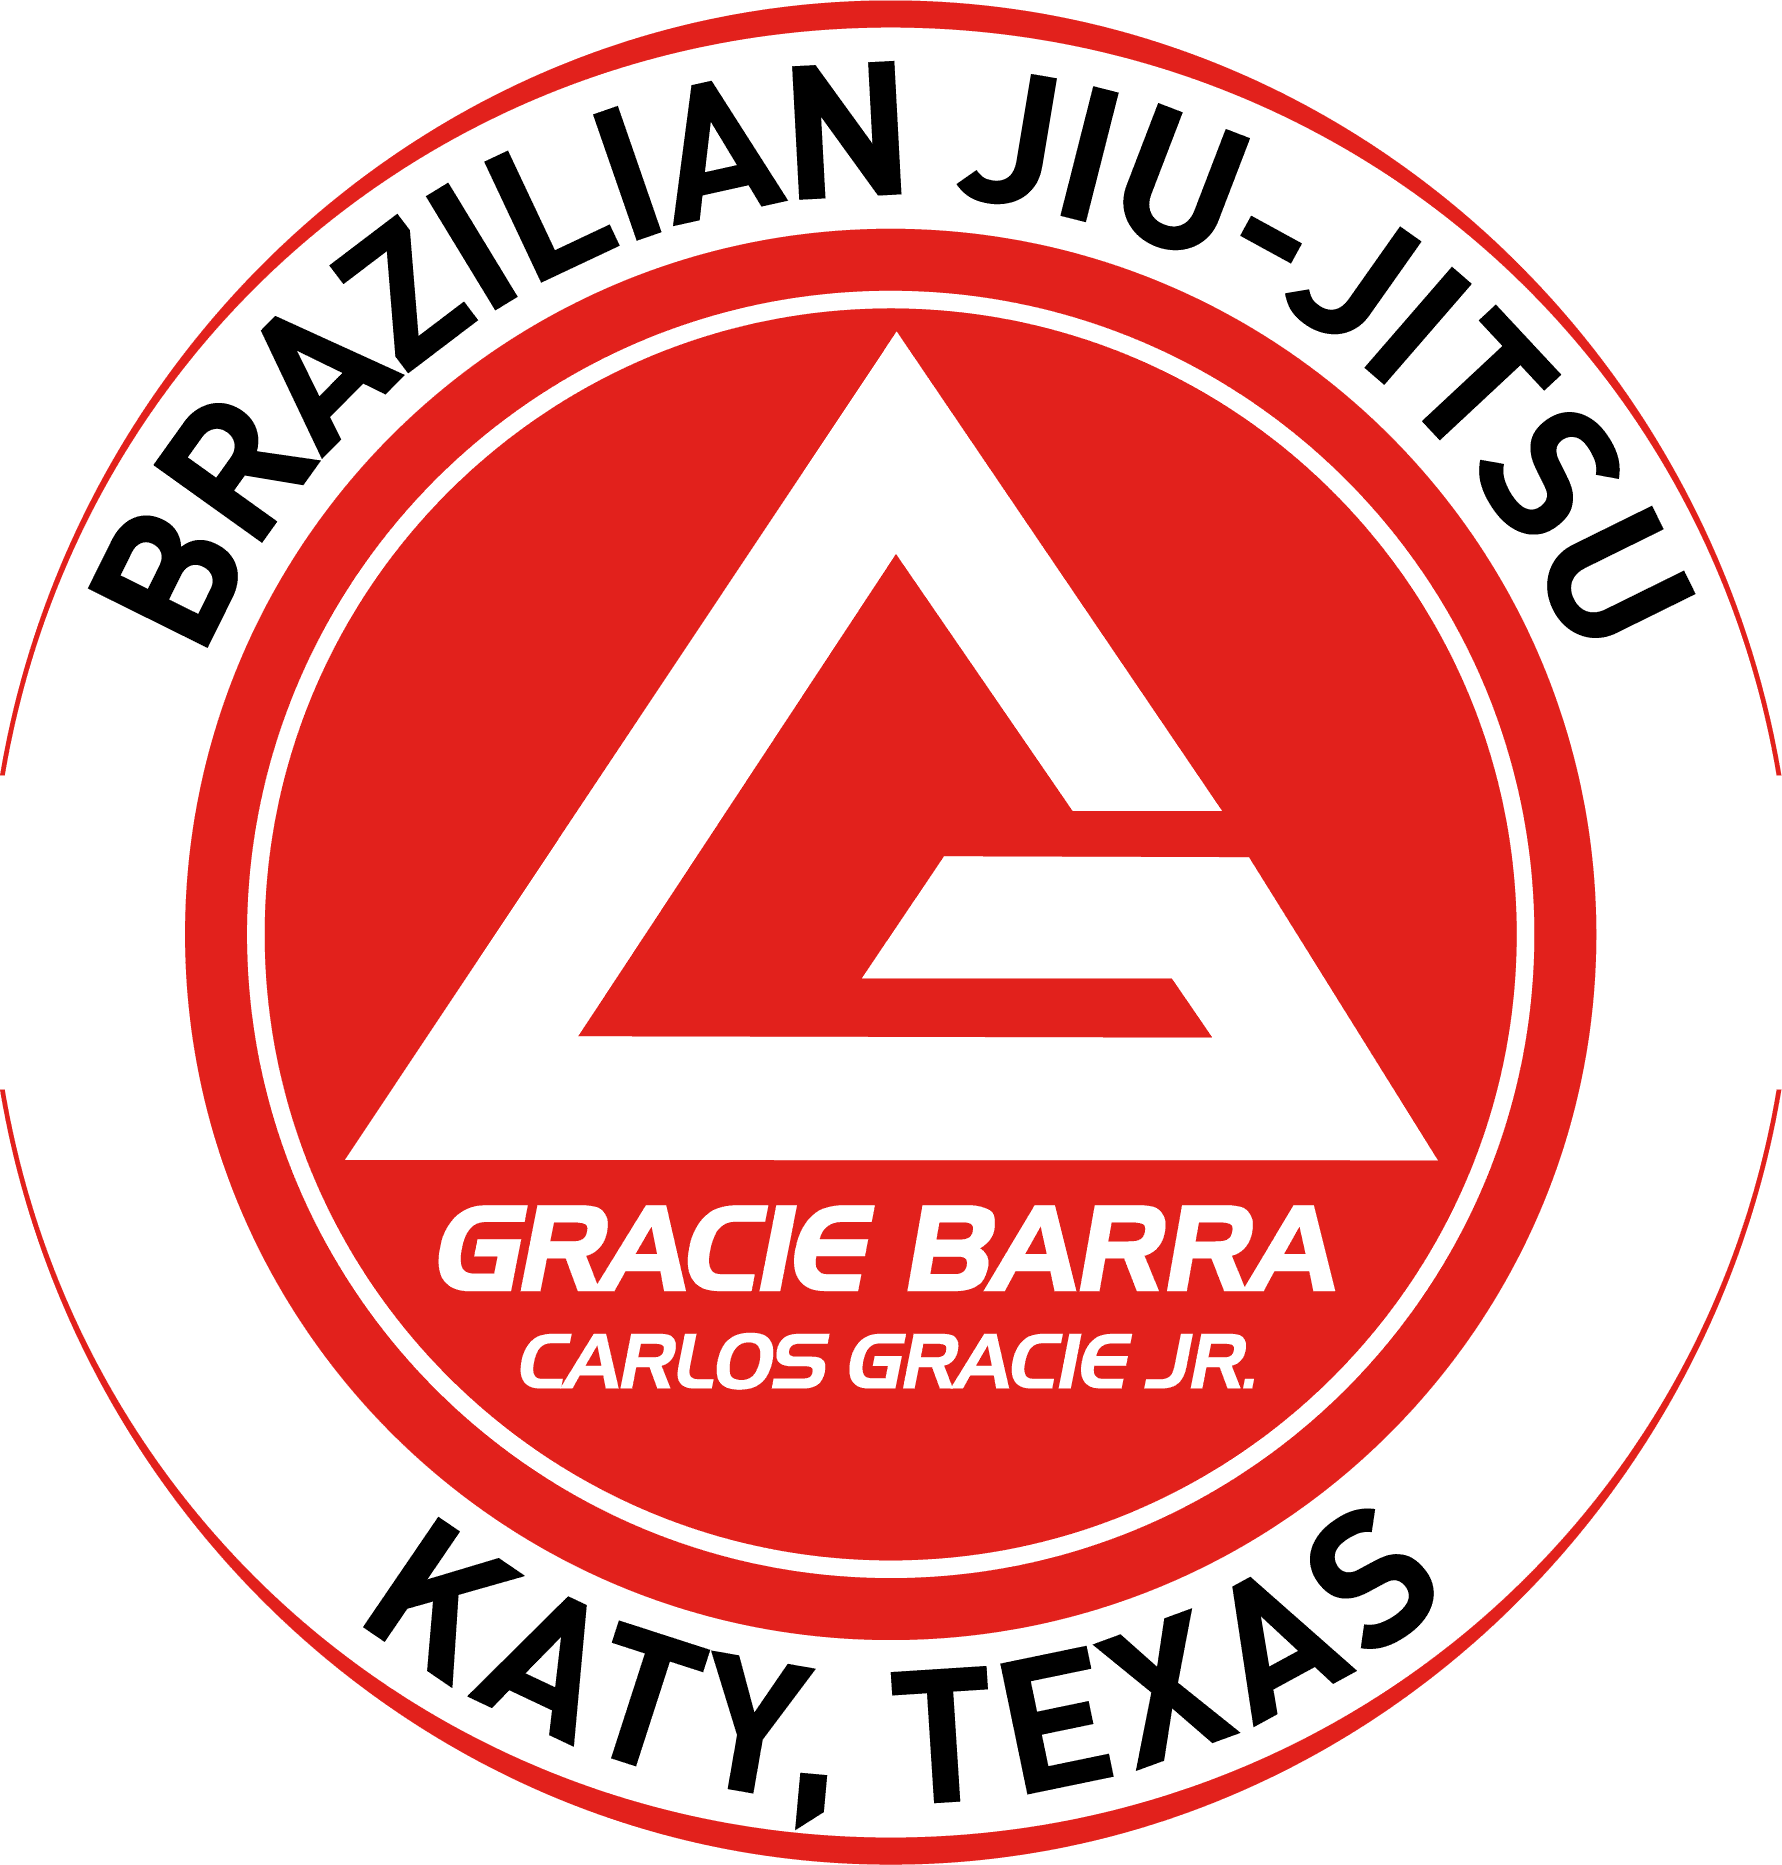 Gracie Barra Katy | About